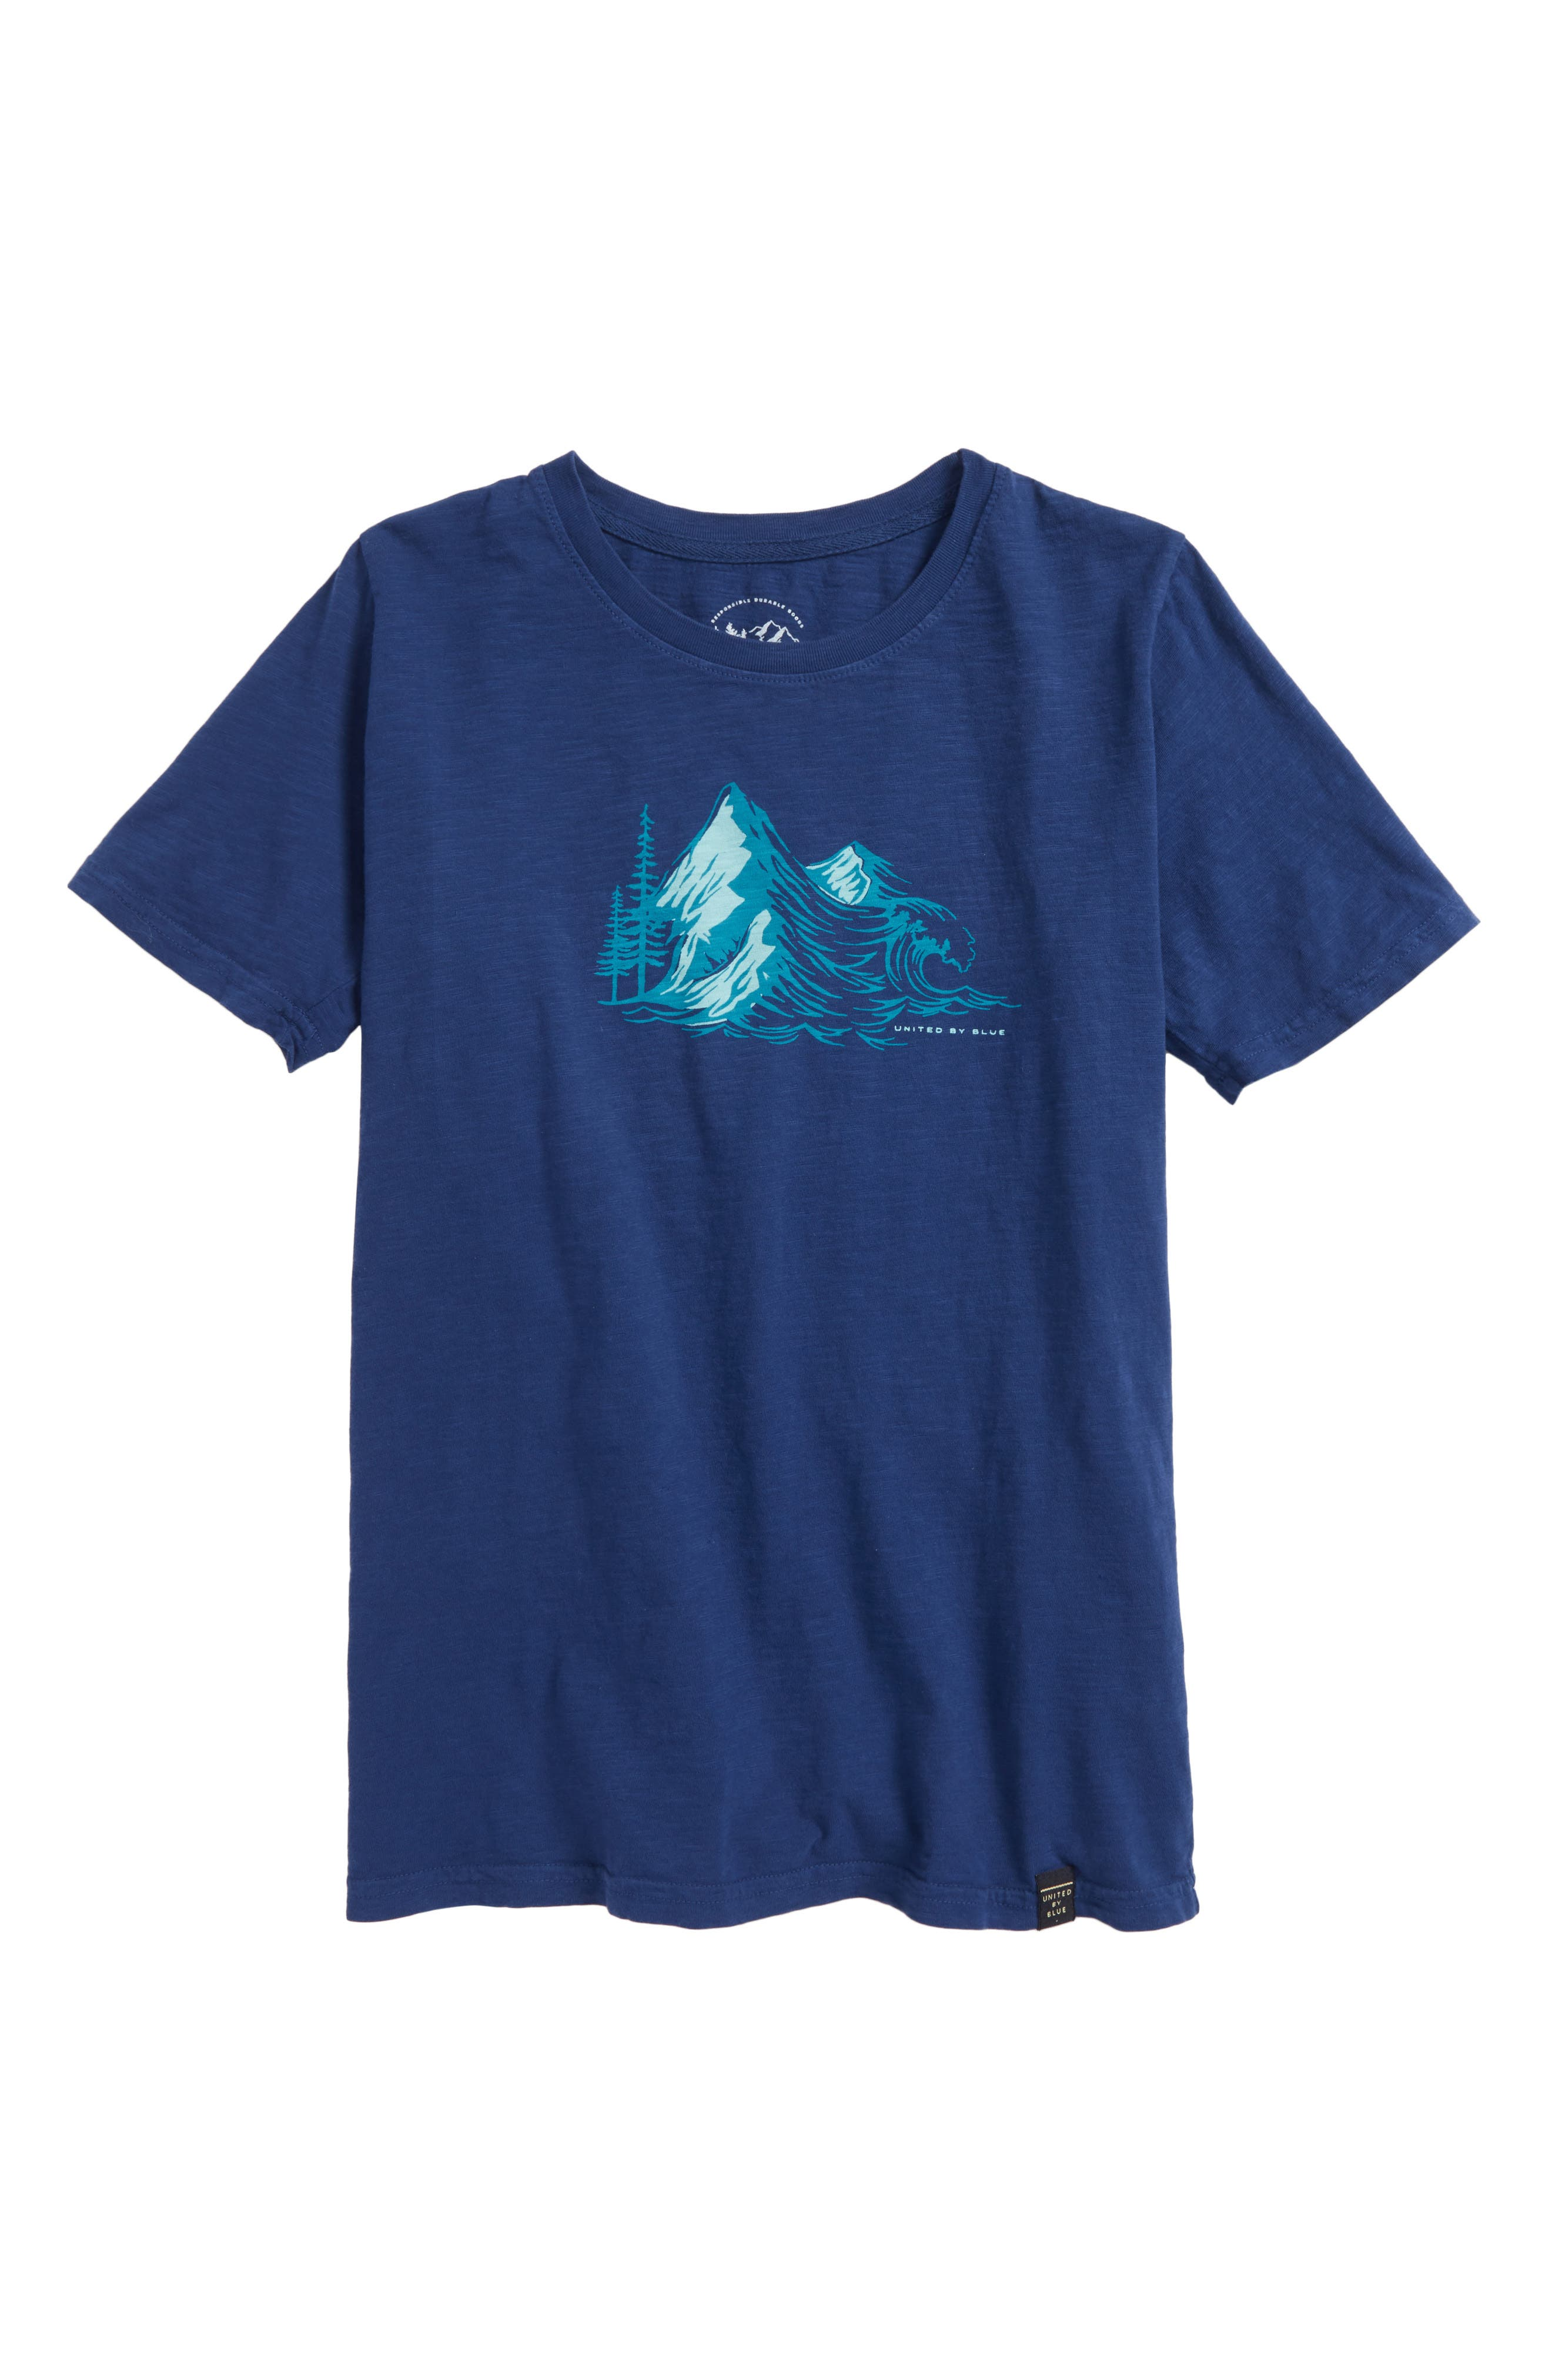 Peaks Graphic Organic Cotton T-Shirt,                         Main,                         color, Navy